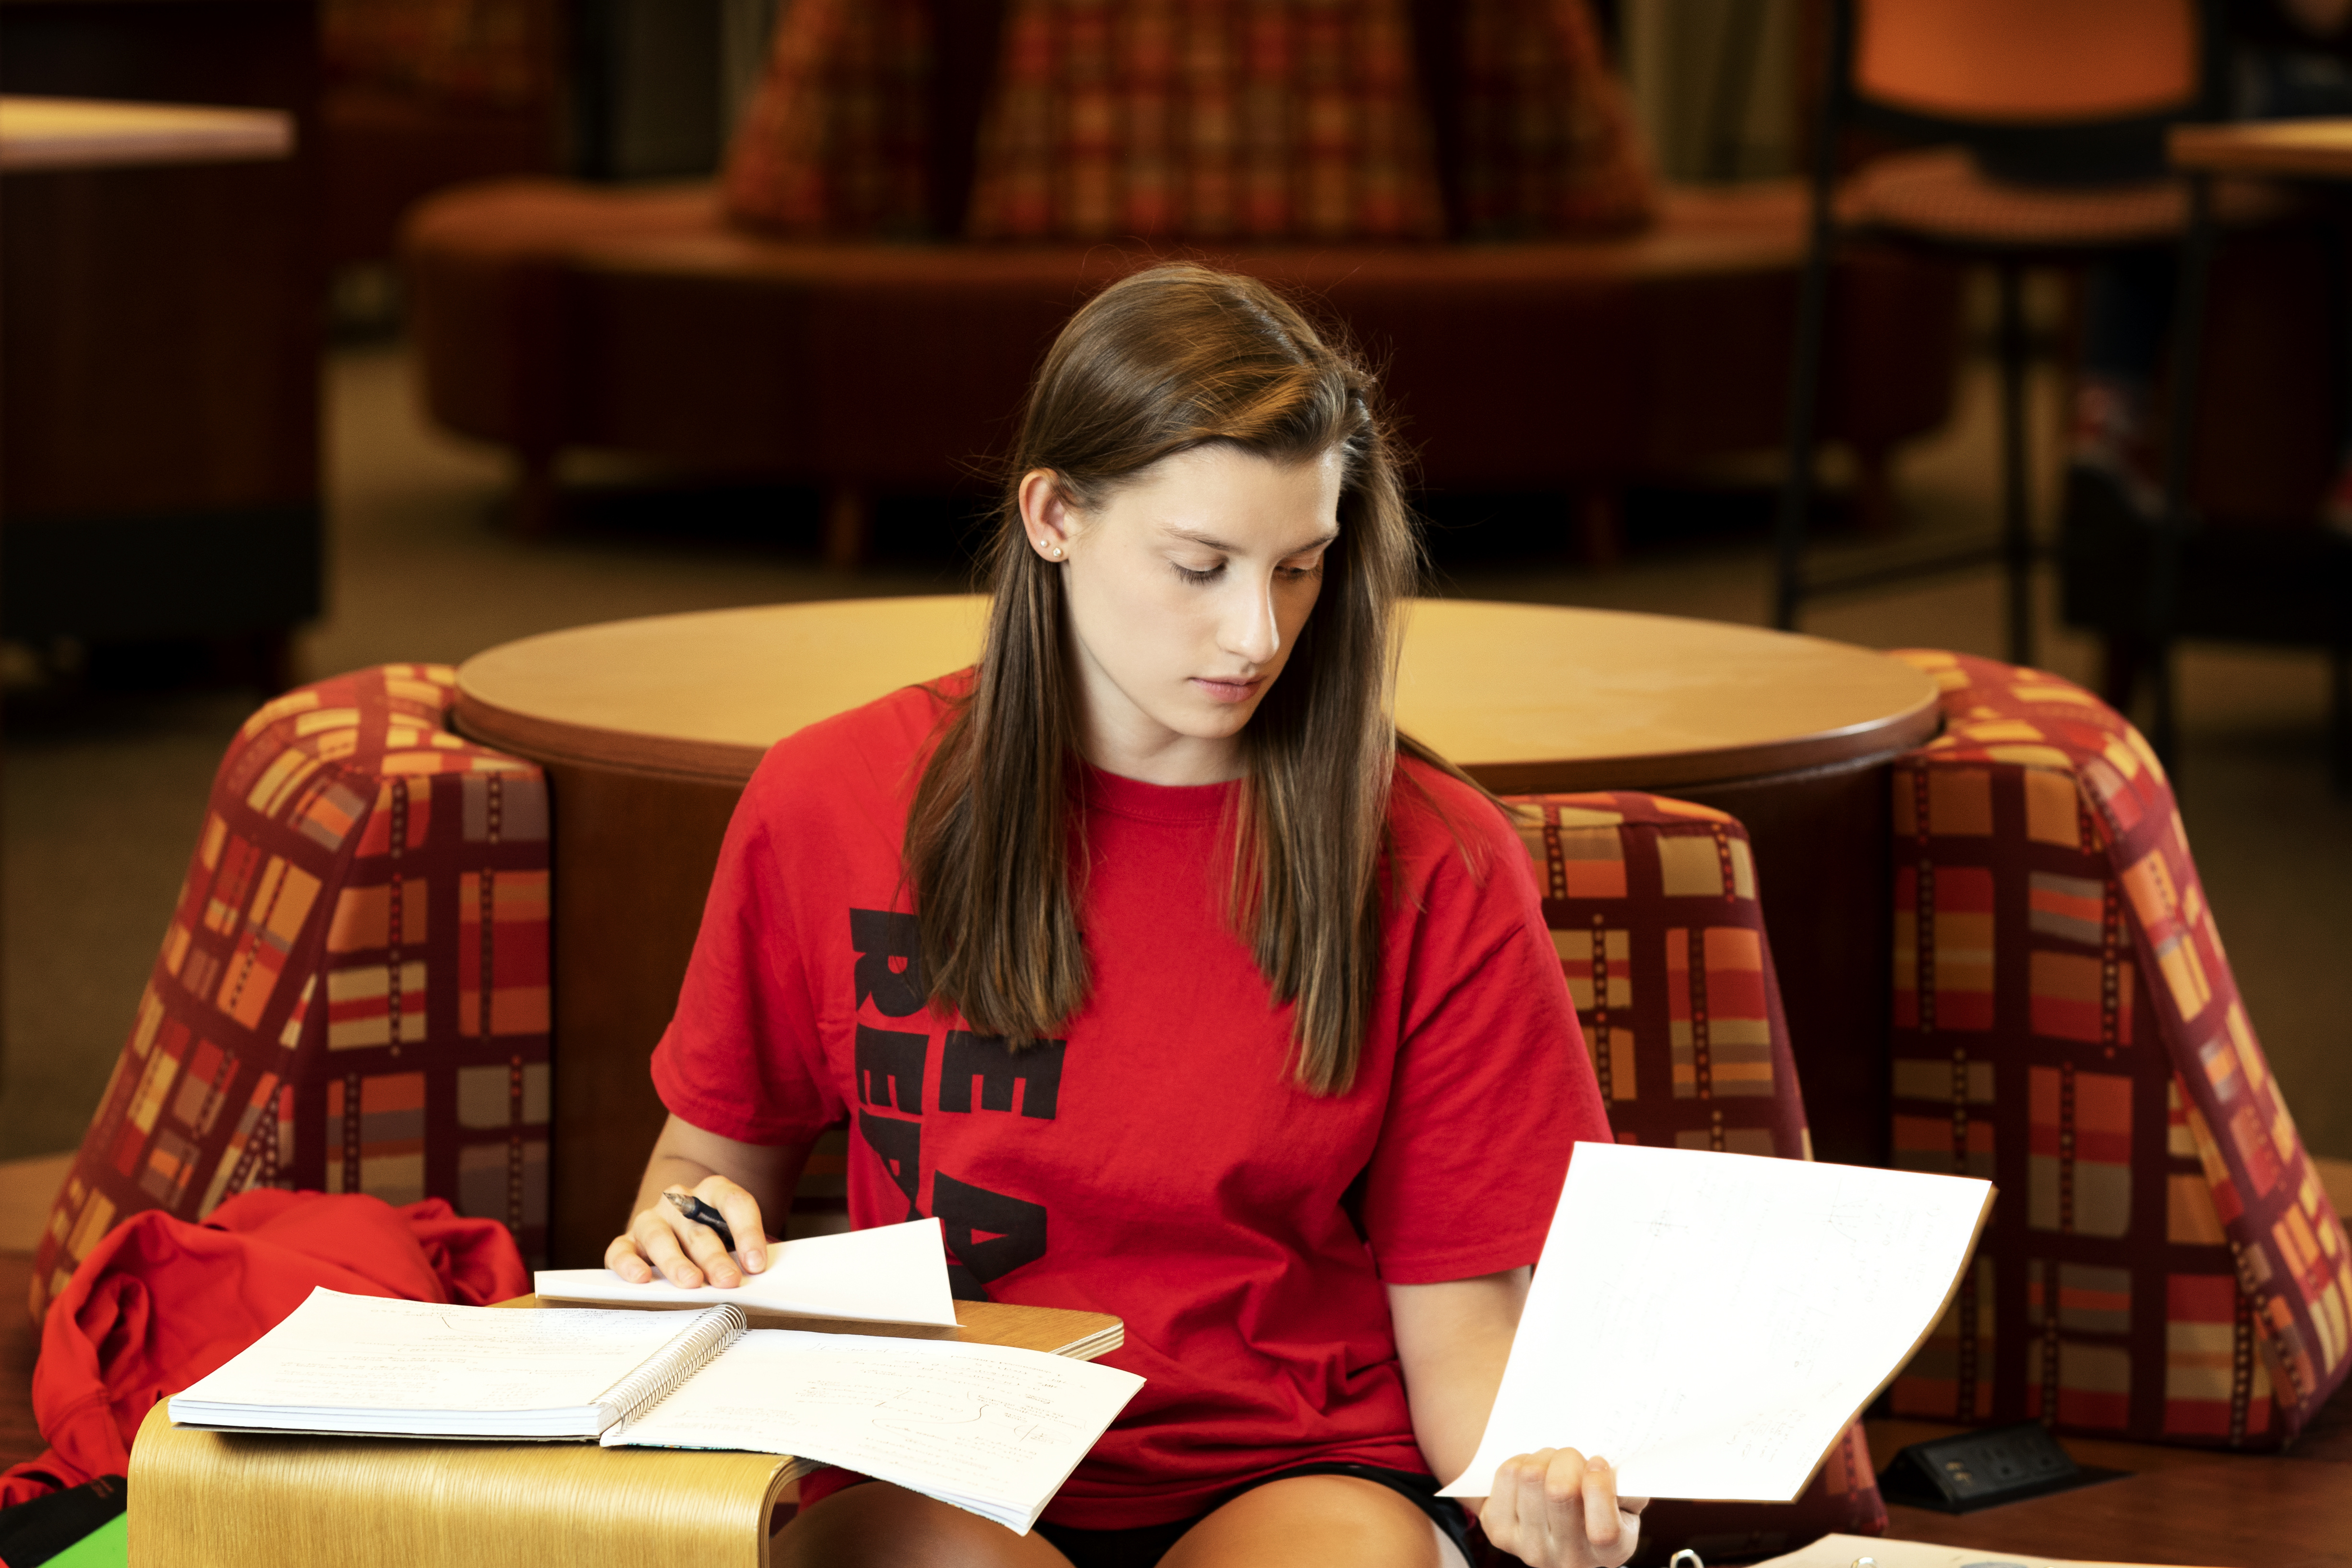 Woman studying with notes